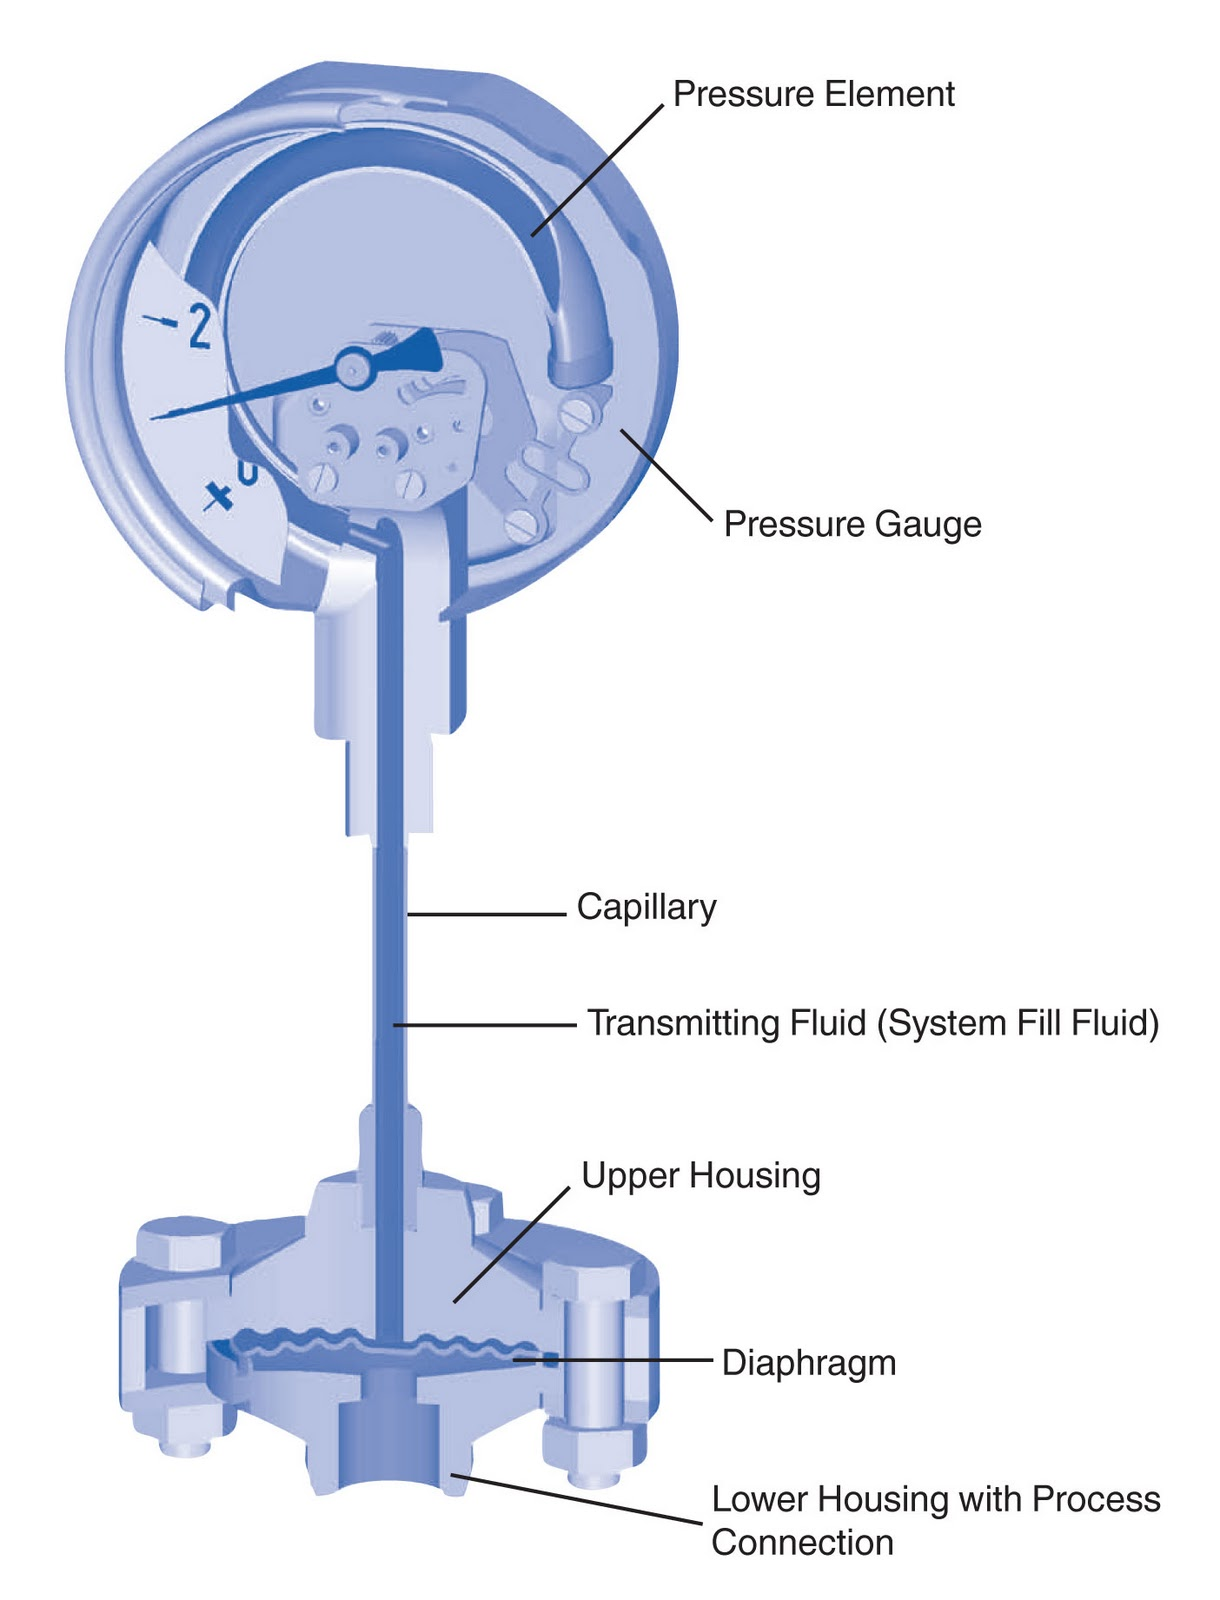 Wika pressure gauge %2526 diaph wika pressure transmitter connection diagram efcaviation com  at edmiracle.co